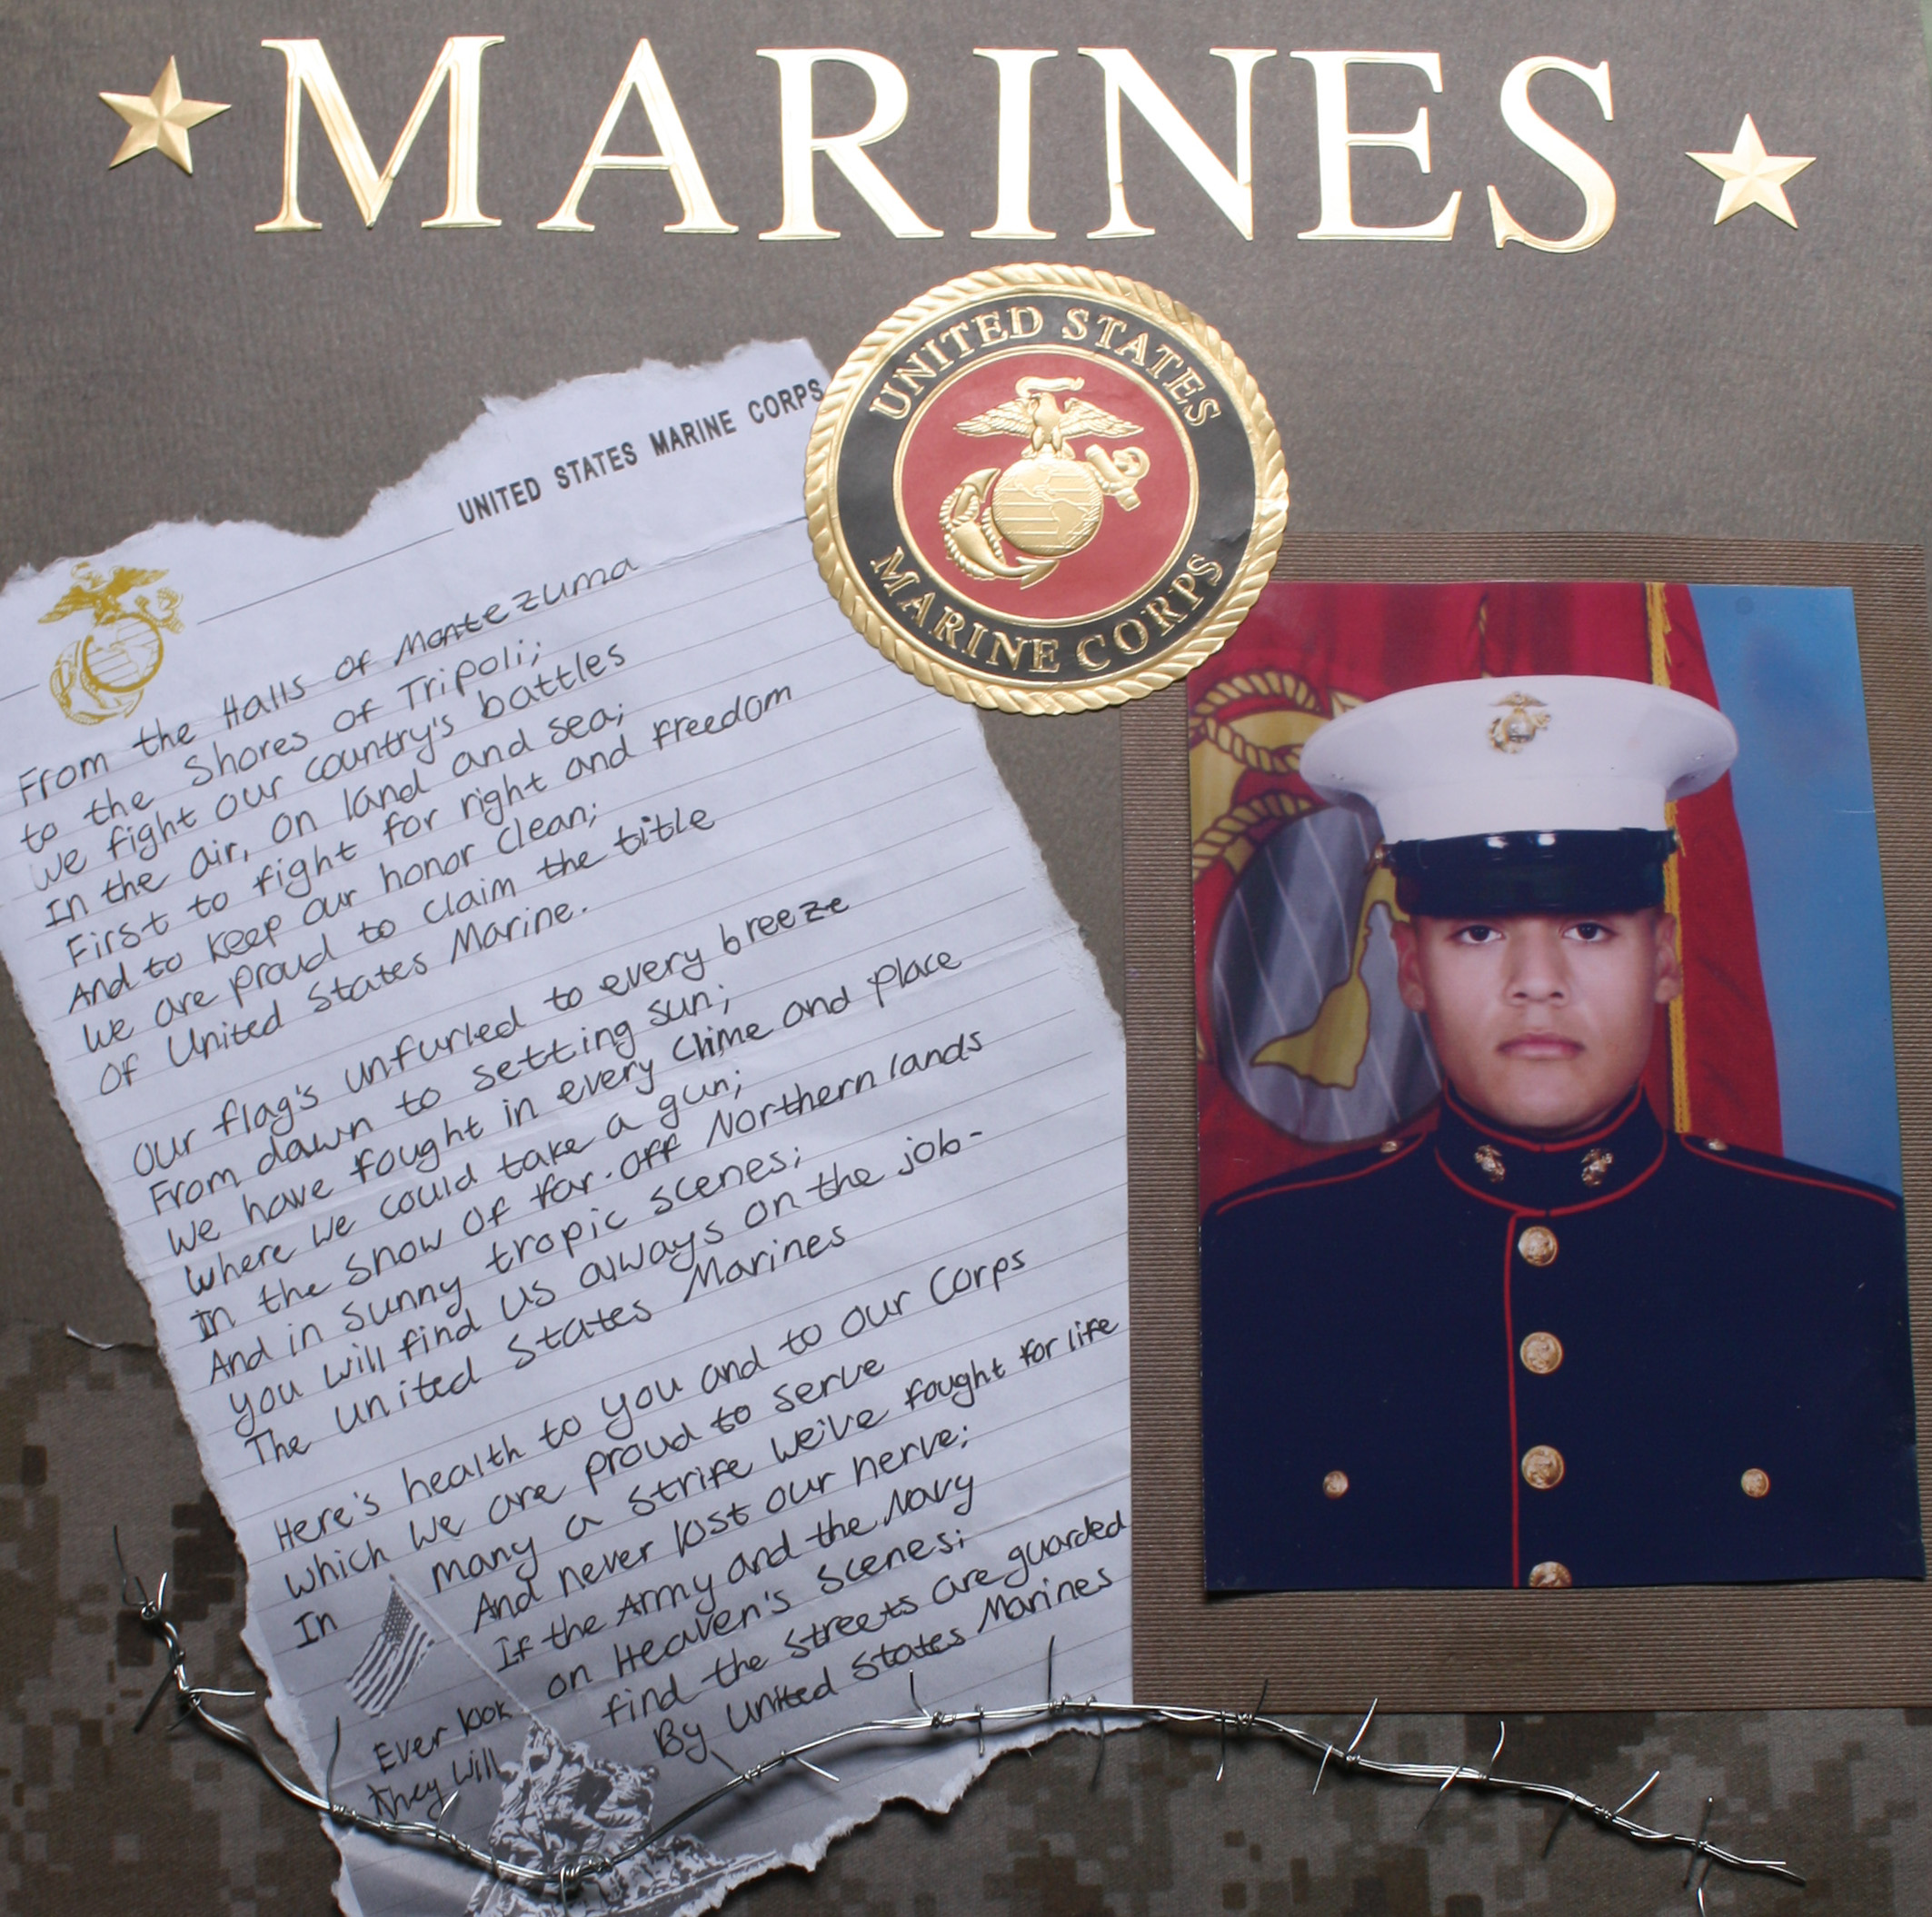 Scrapbook ideas girlfriend - 105 Best Images About Marines Scrapbooking On Pinterest Marine Corps Boot Camp Boot Camp And Usmc